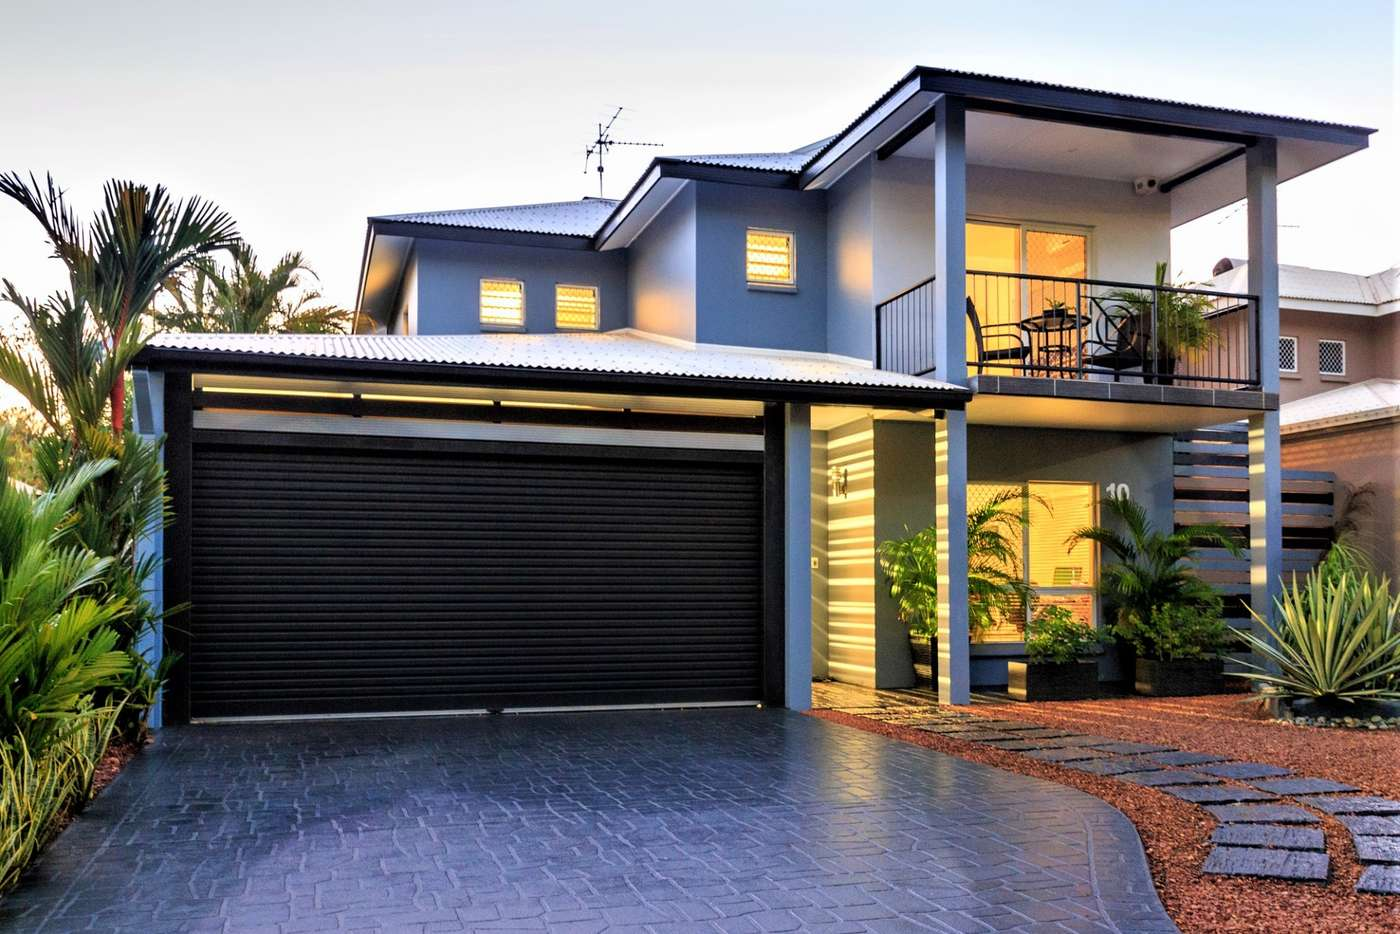 Main view of Homely house listing, 10 Murdoch Gardens, Durack NT 830